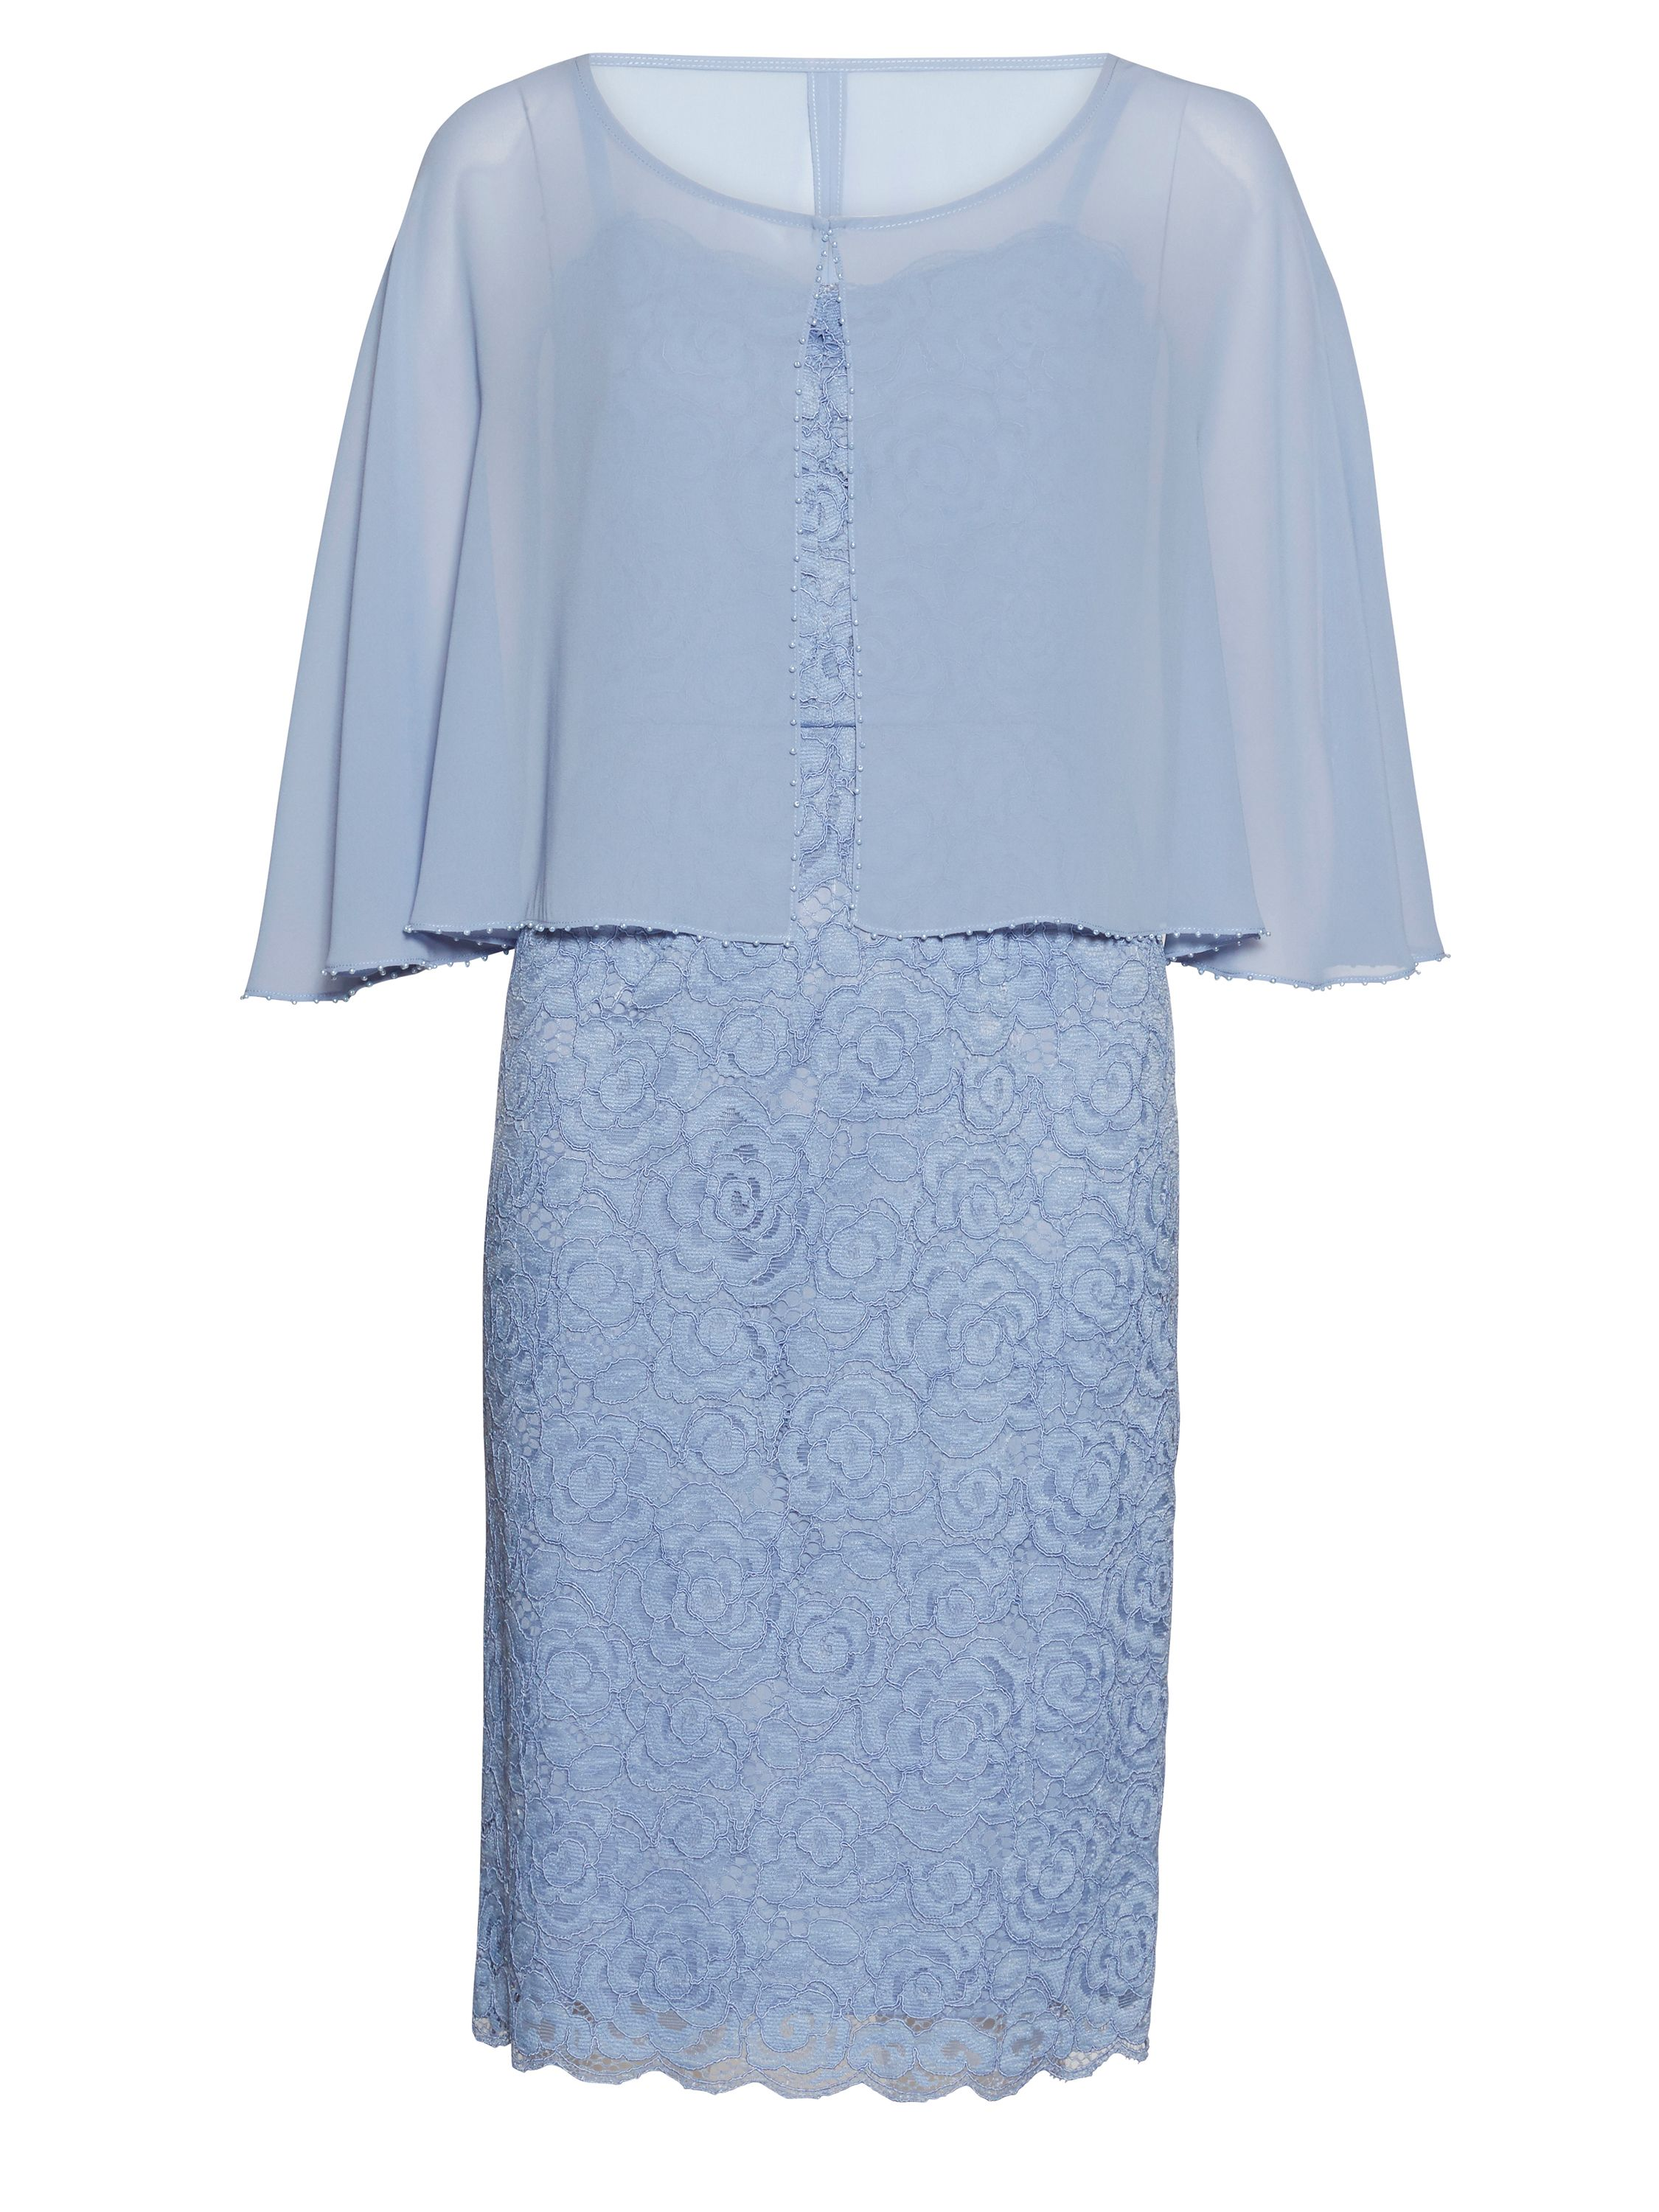 Gina Bacconi Corded lace dress with chiffon cape, Blue